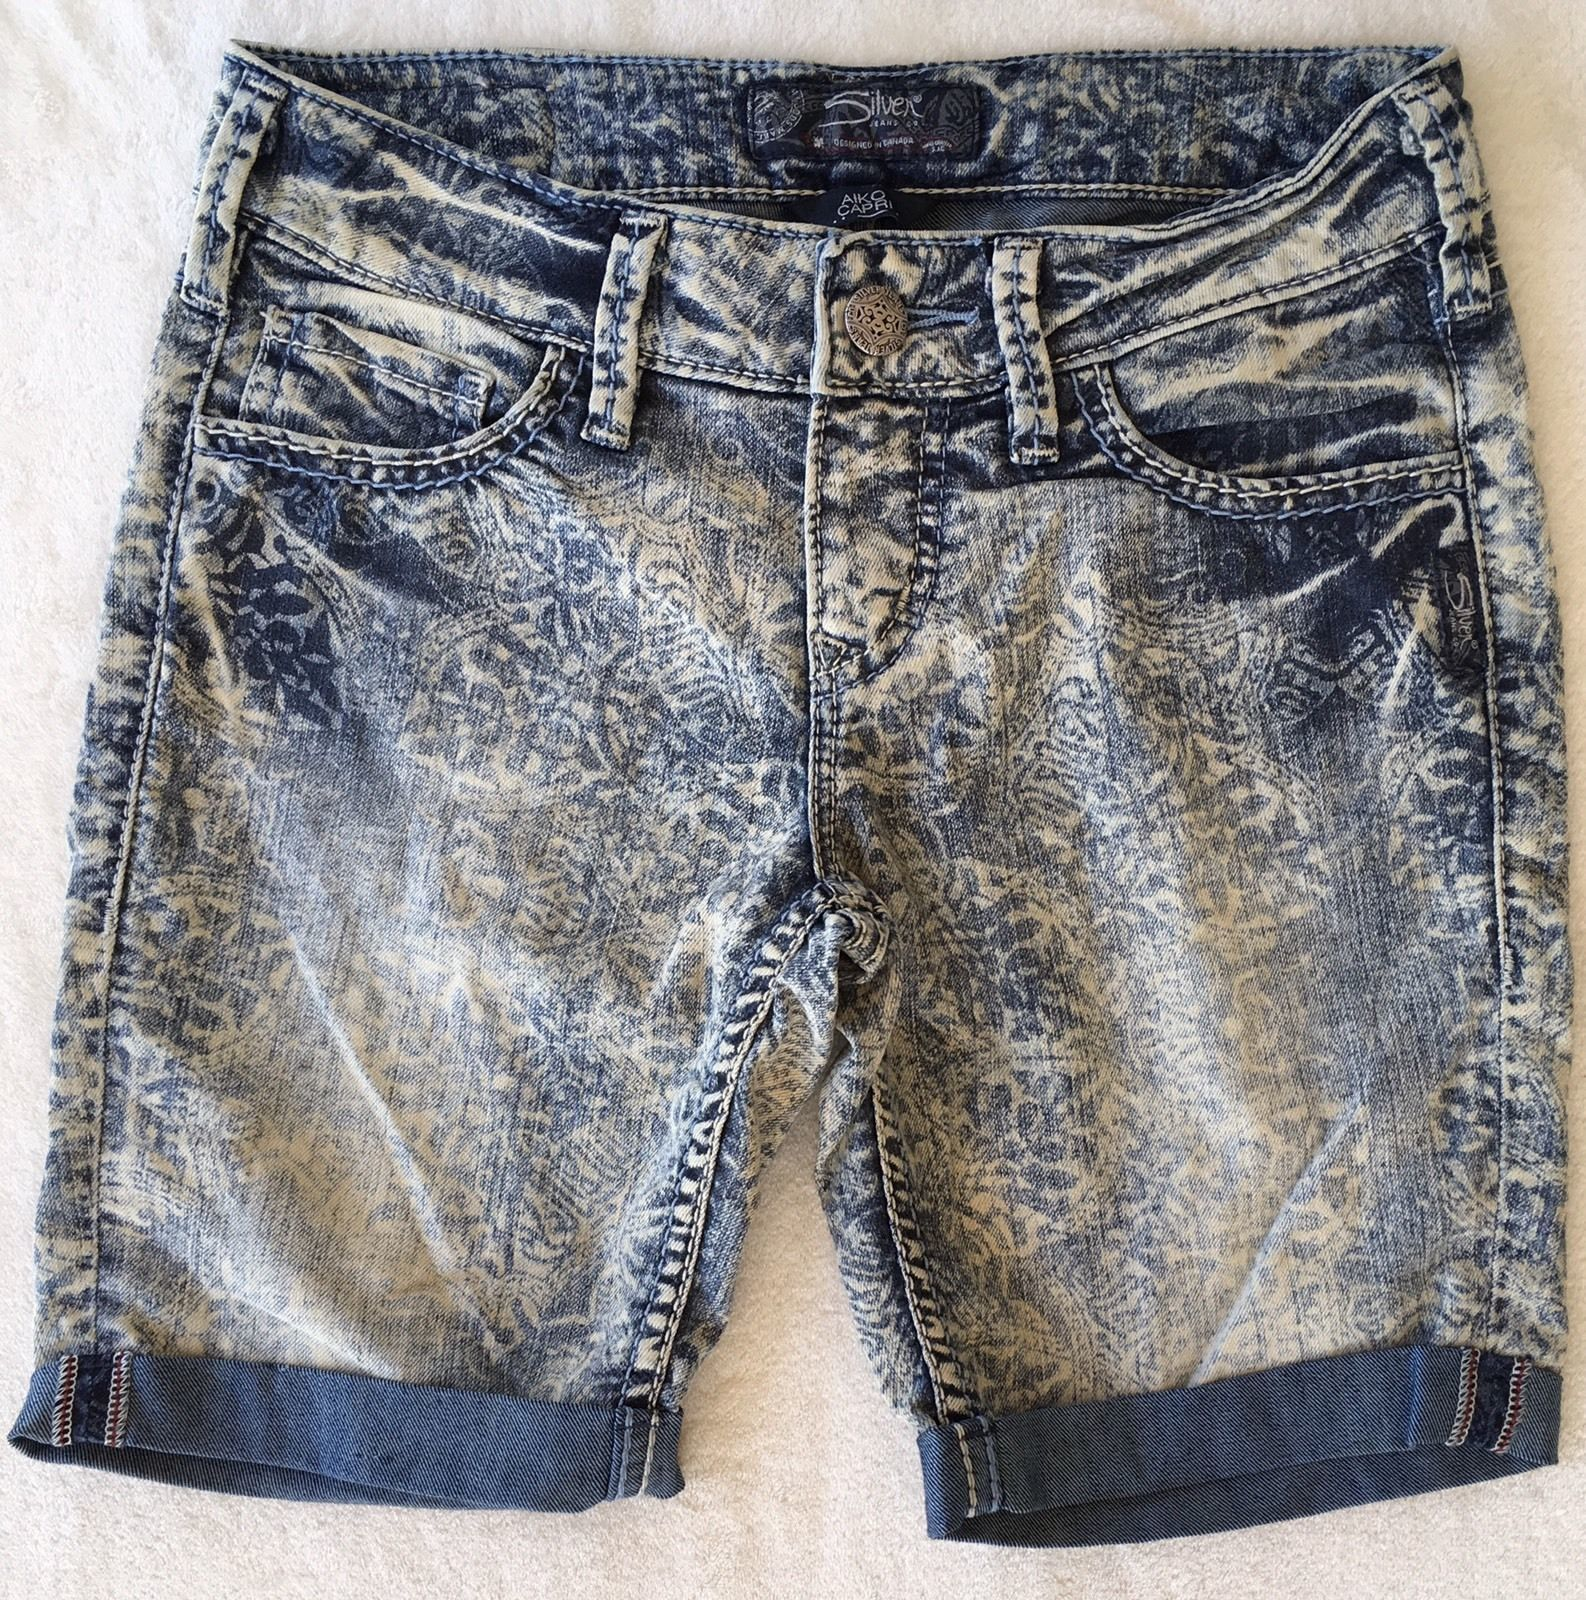 New SILVER Jeans Sale Buckle Mid Rise Printed Aiko Denim Jean Stretch Shorts 26